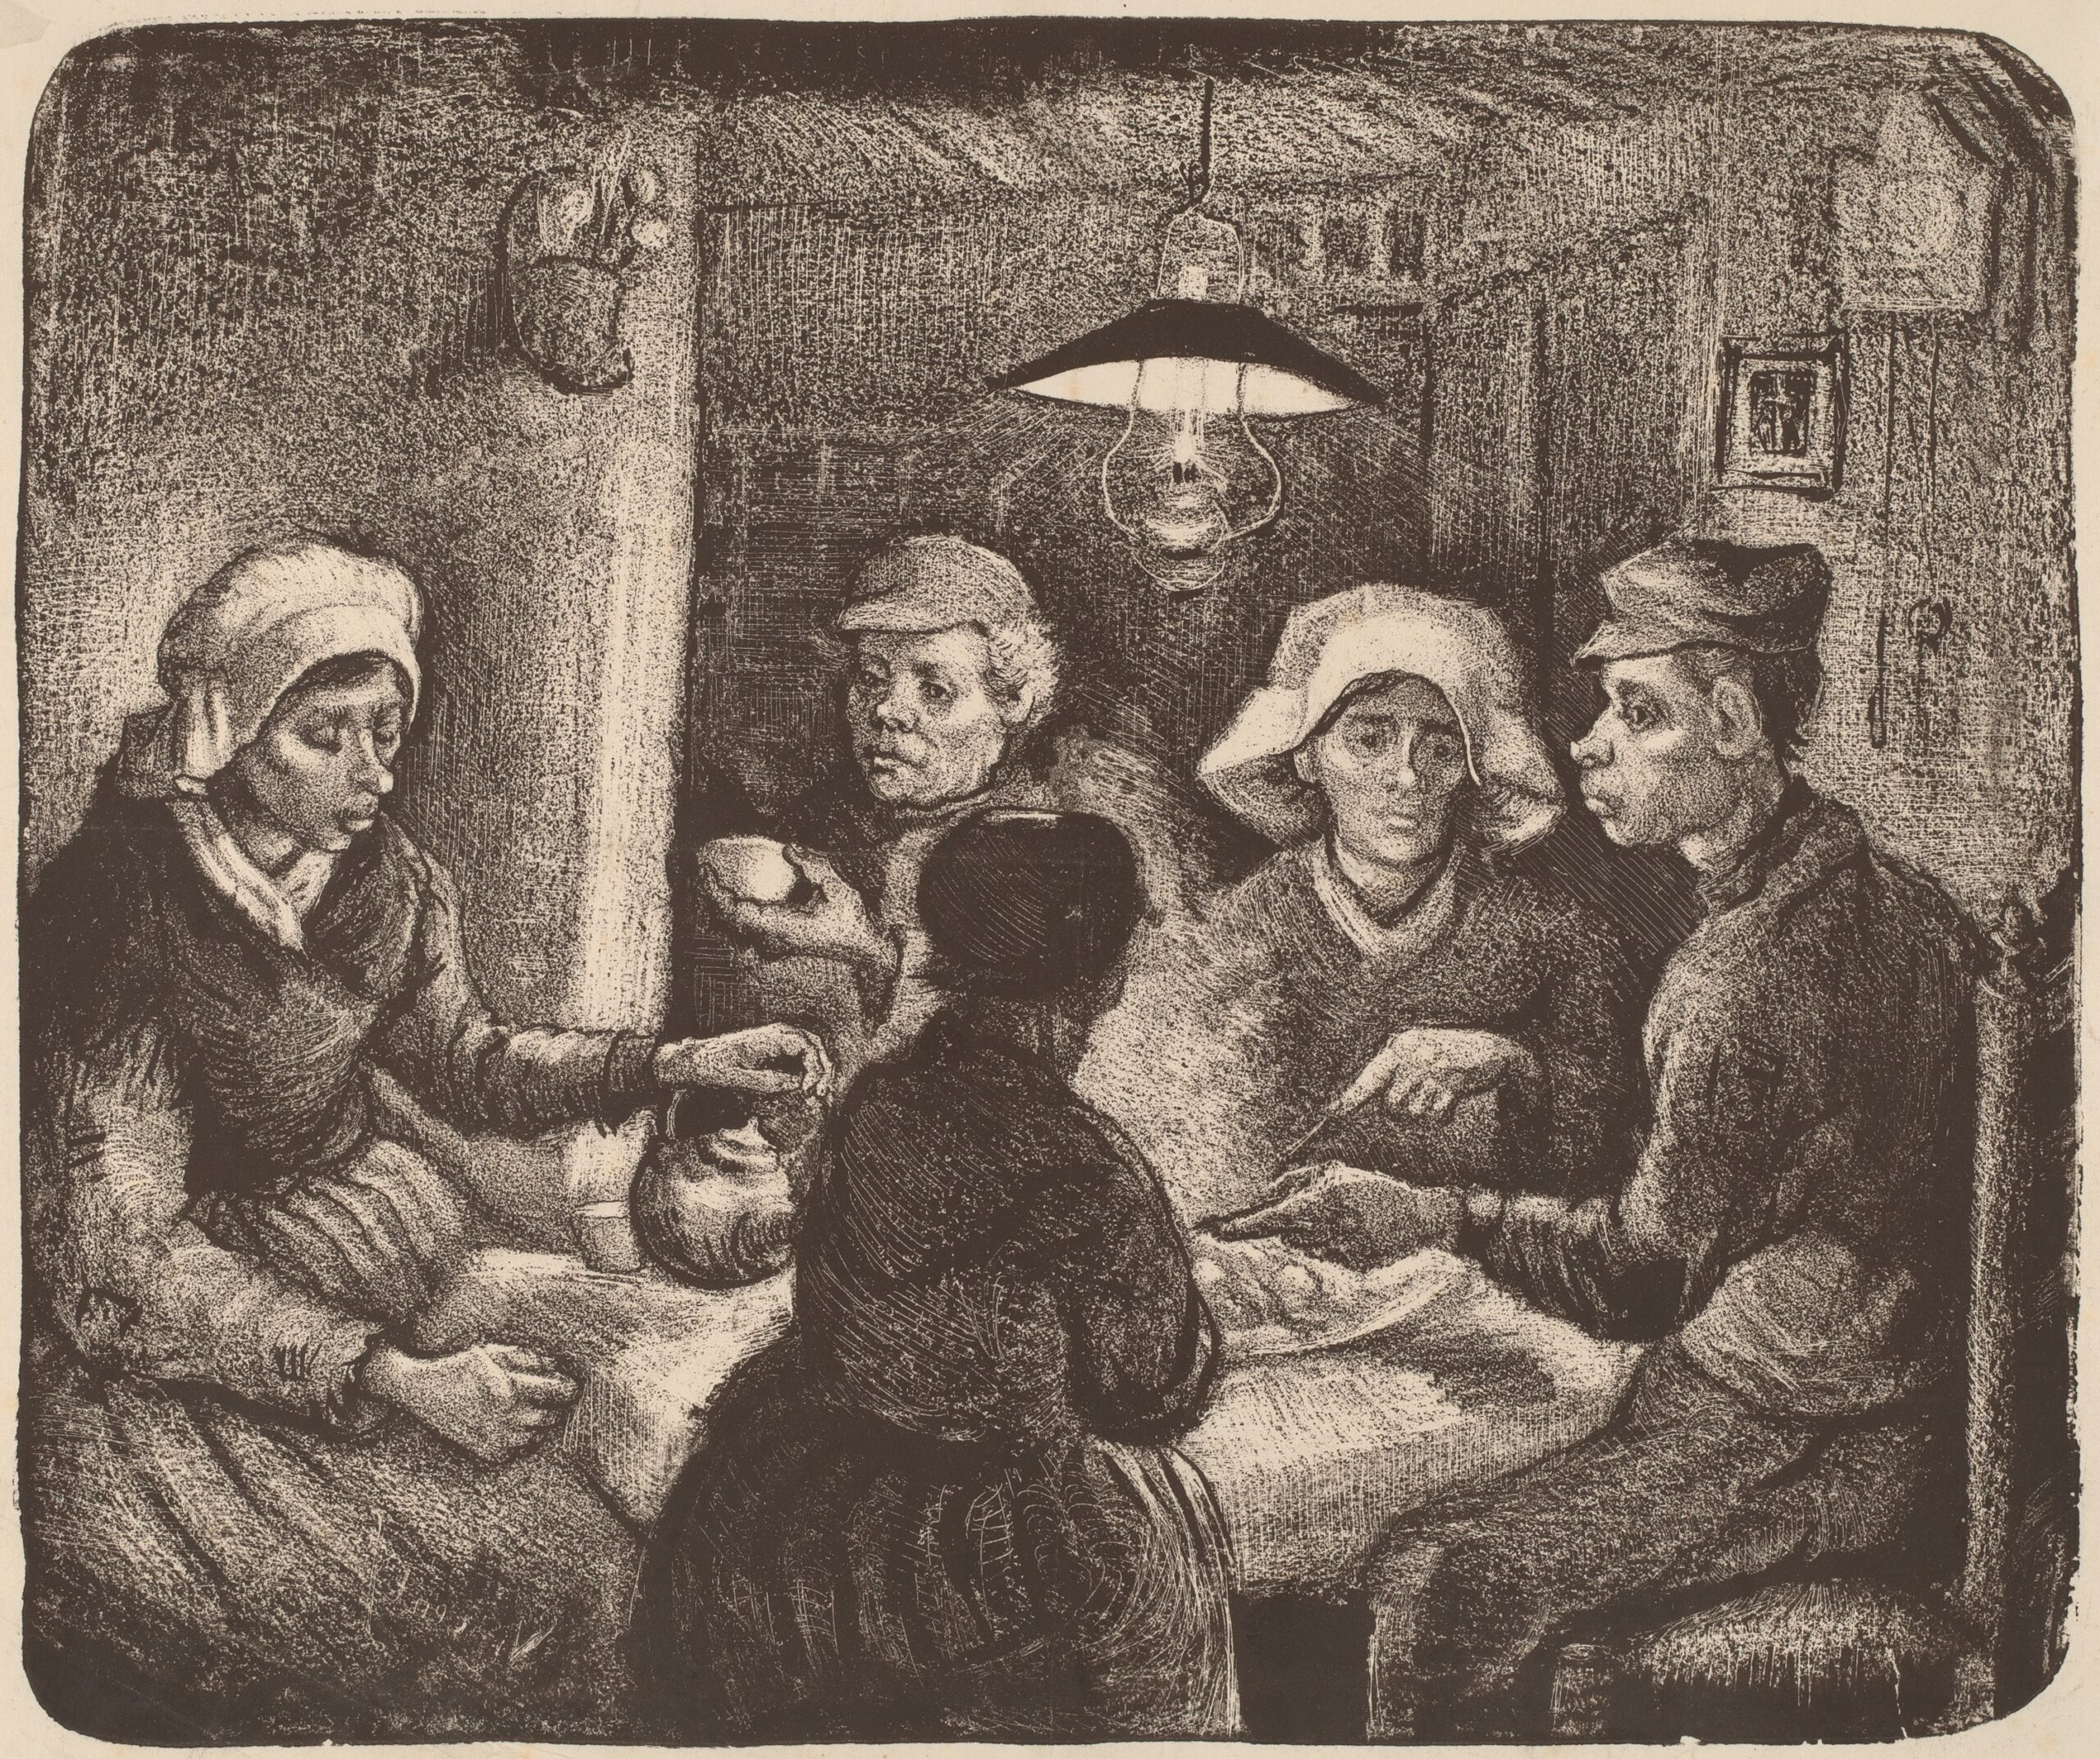 Vincent van Gogh (Dutch, 1853–1890), The Potato Eaters, 1885. Lithograph in dark brown, 10 3/8 × 12 7/16 in. National Gallery of Art, Washington, DC, Rosenwald Collection, 1951.10.33.